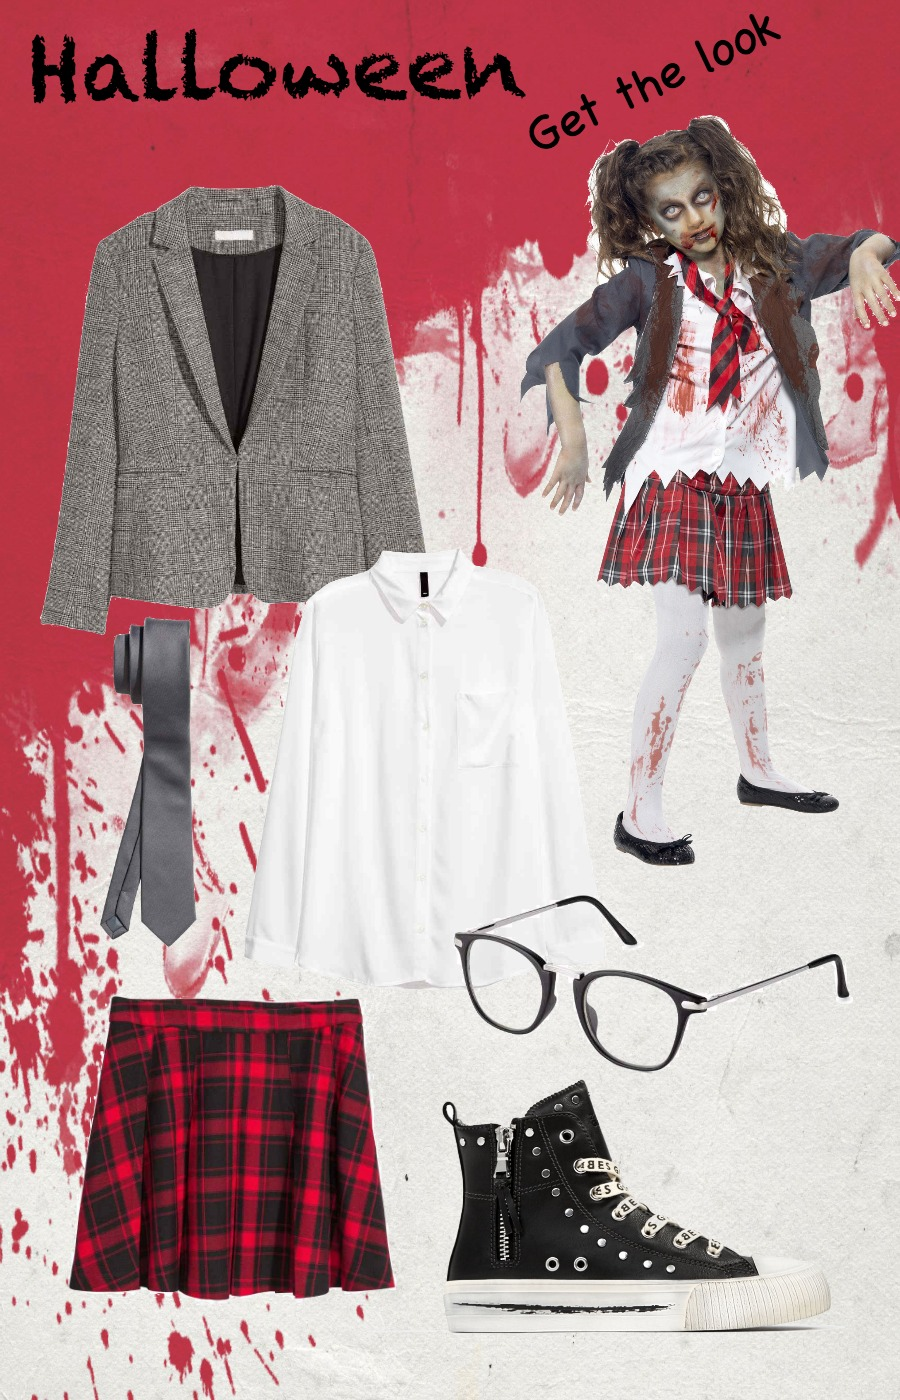 Zombie teen Halloween get the look